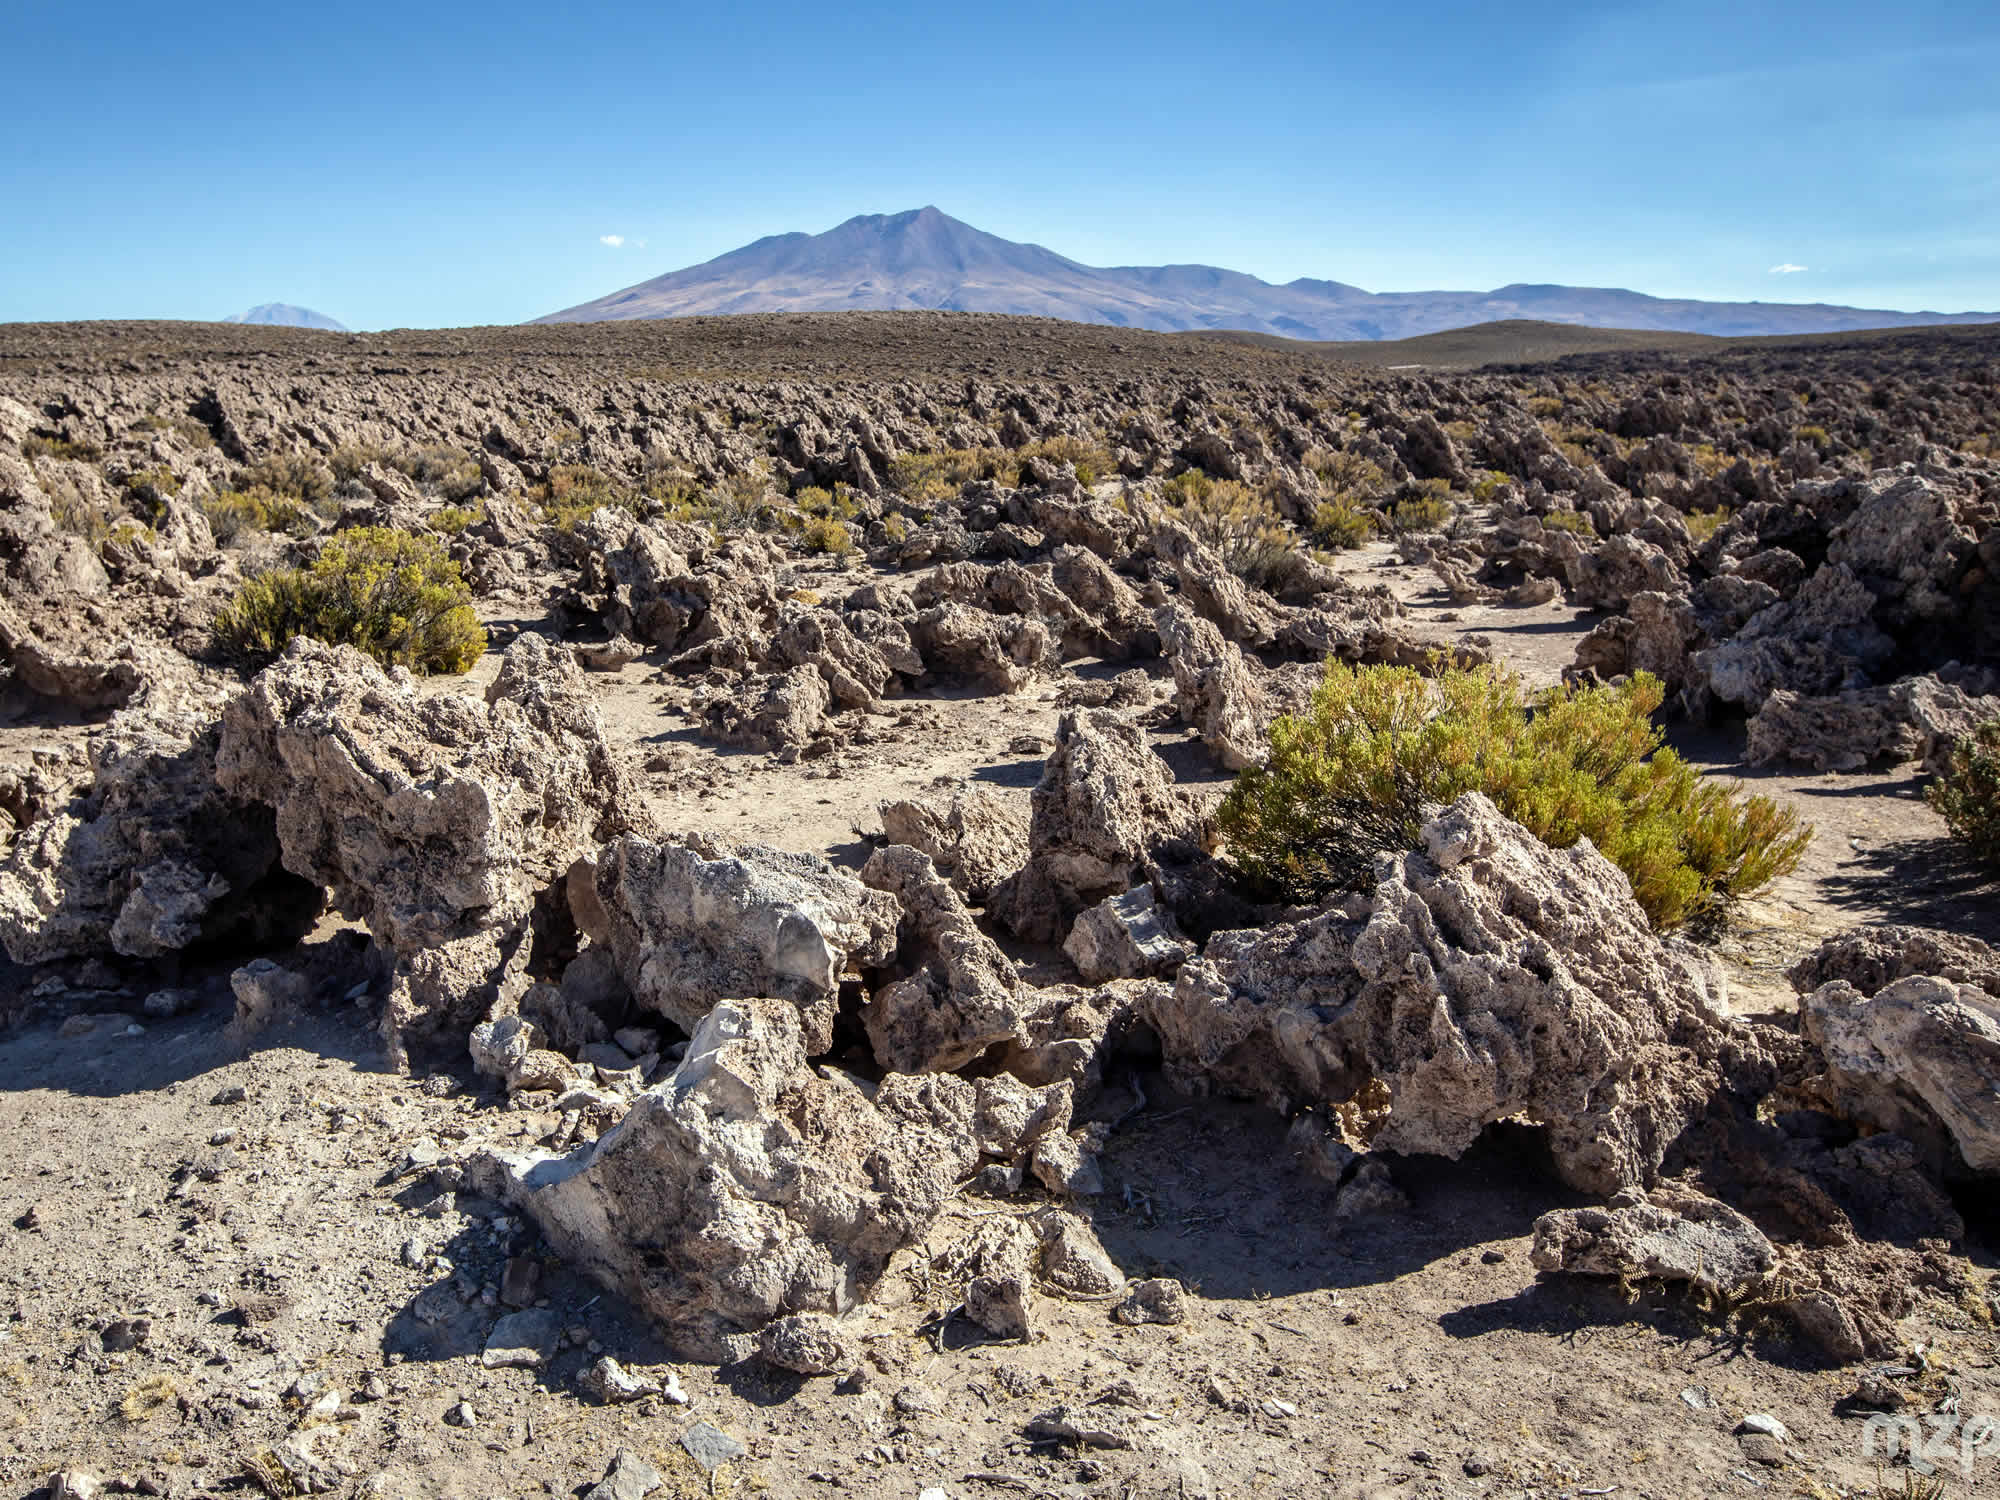 San Pedro de Atacama - Uyuni - Calama Private Tour, 3 Days, 2 Nights